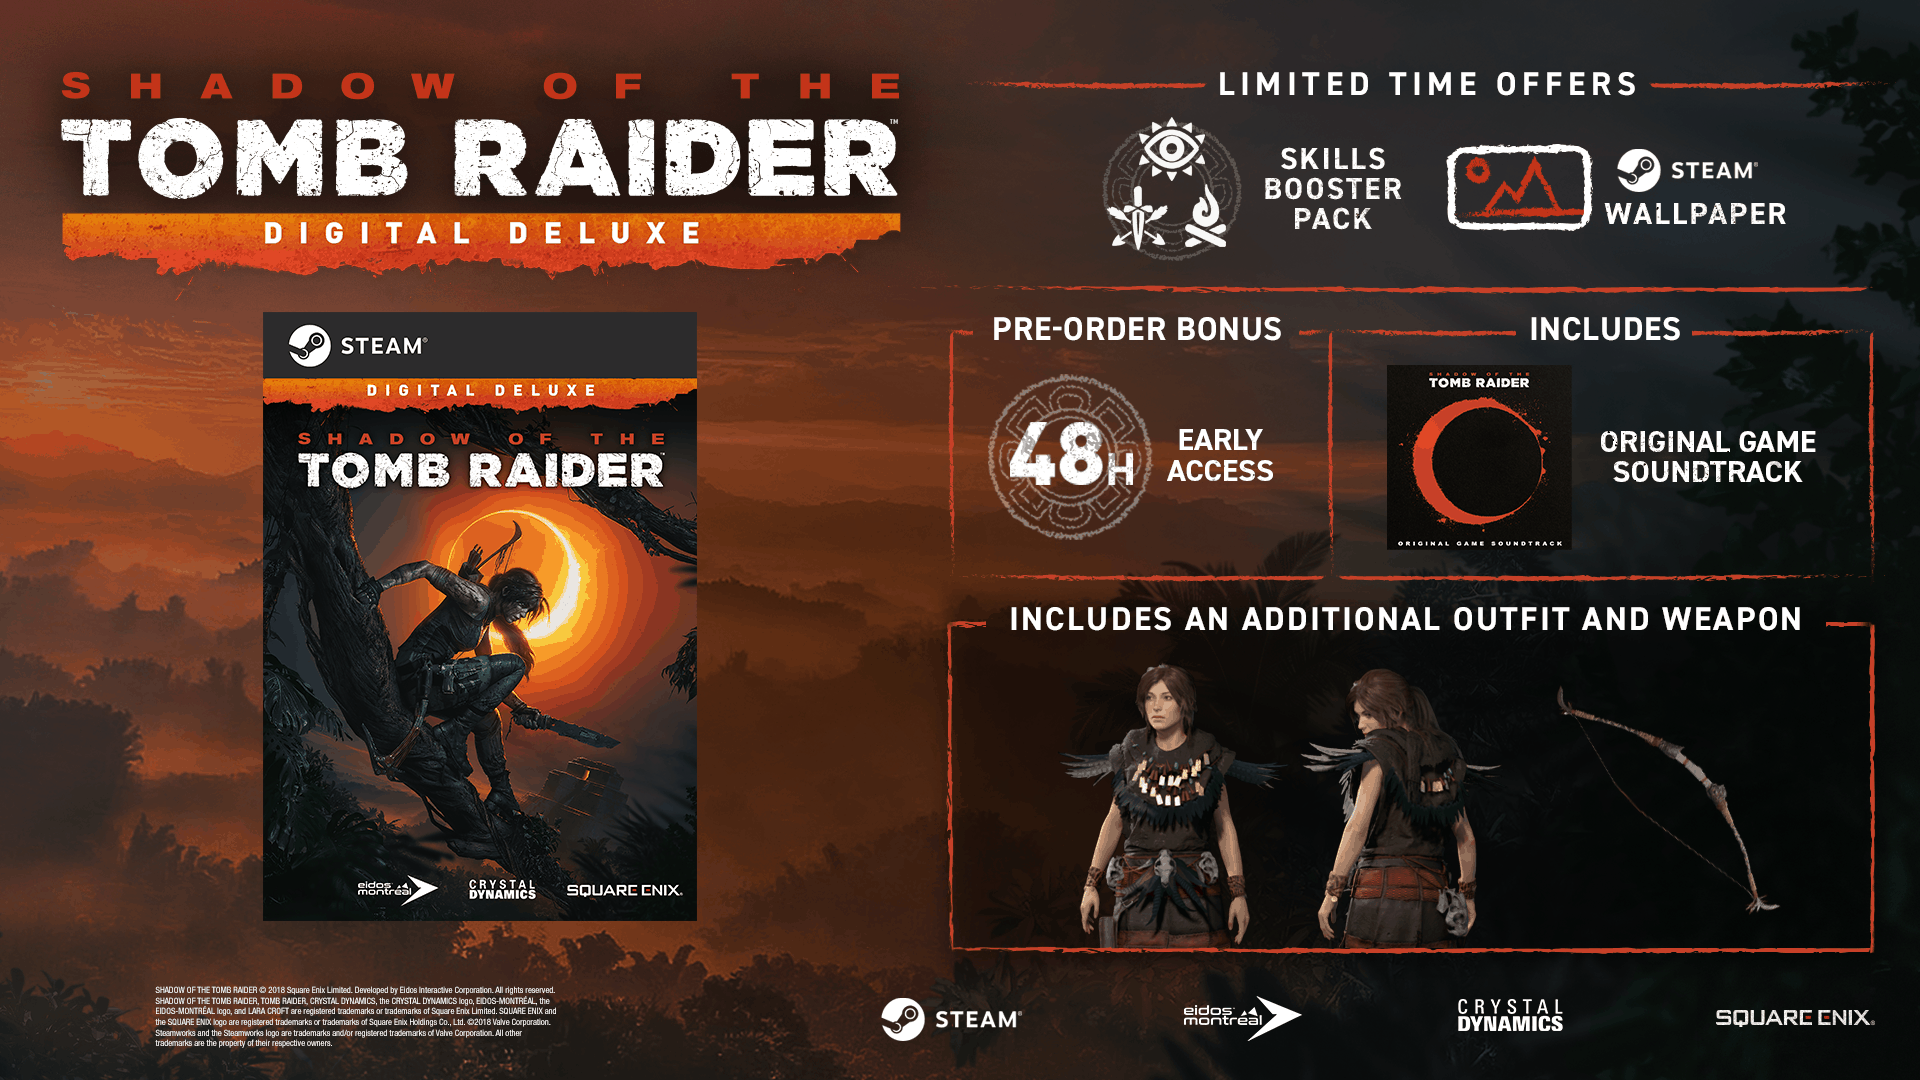 Shadow Of The Tomb Raider Game - Digital Deluxe Edition